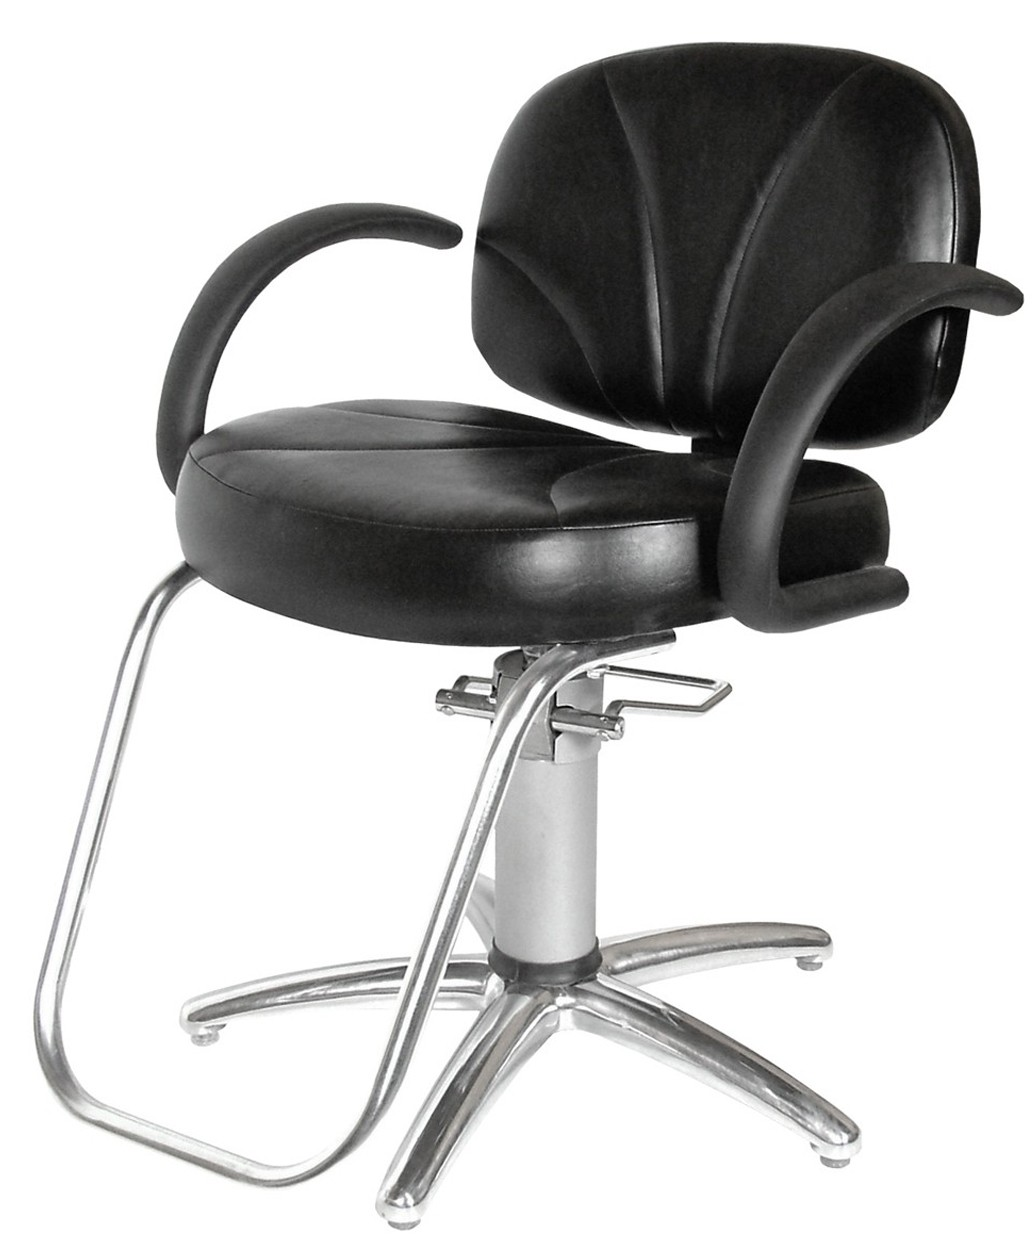 Collins 6500 Le Fleur Styling Chair